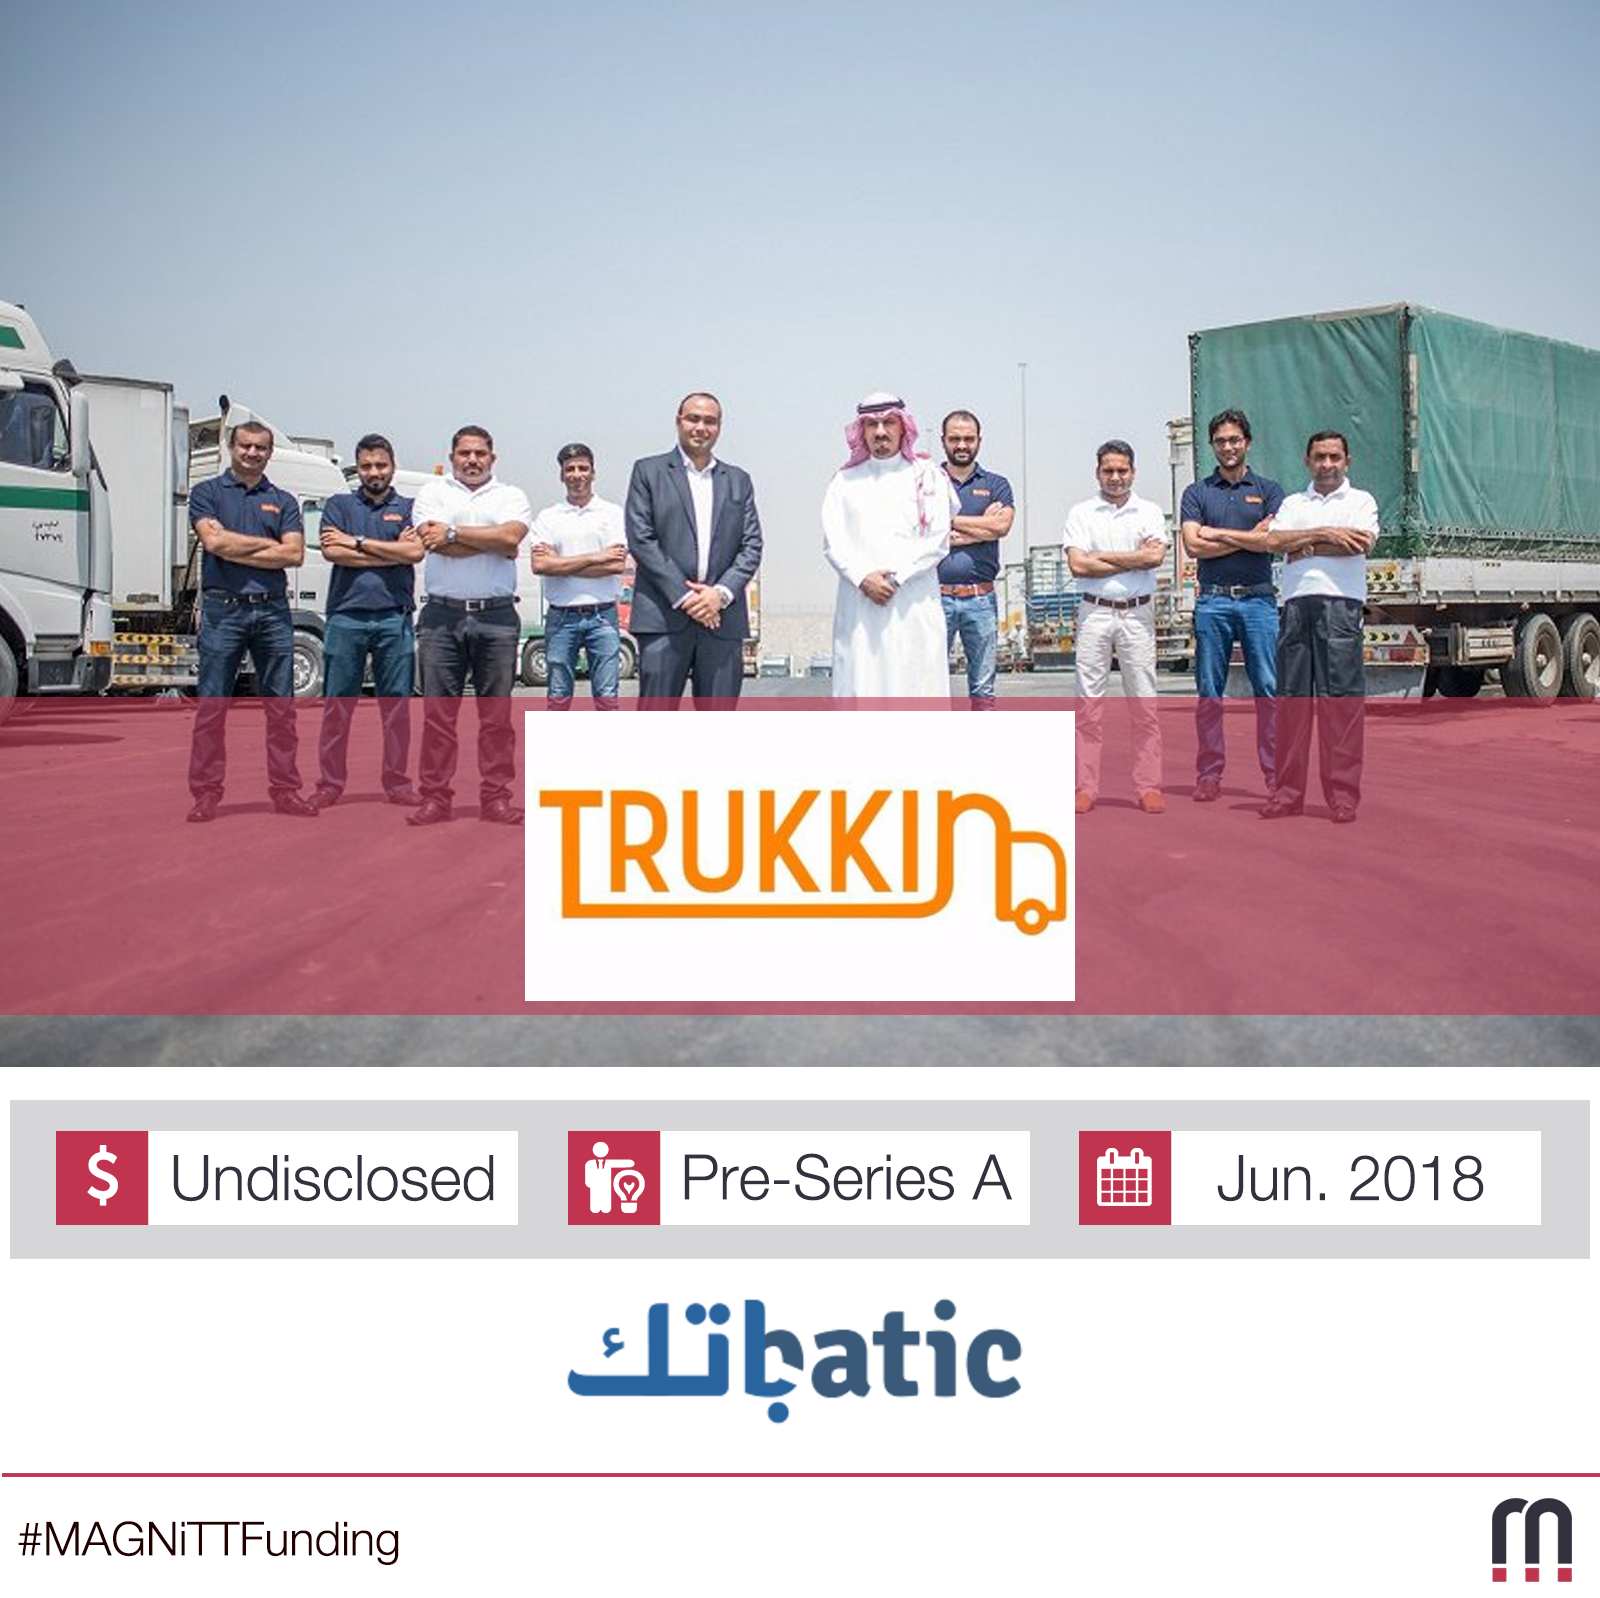 Trukkin, the new tech inspired logistics and transport service provider in Middle East, is set to receive a pre-series funding led by Saudi Arabia's BATIC